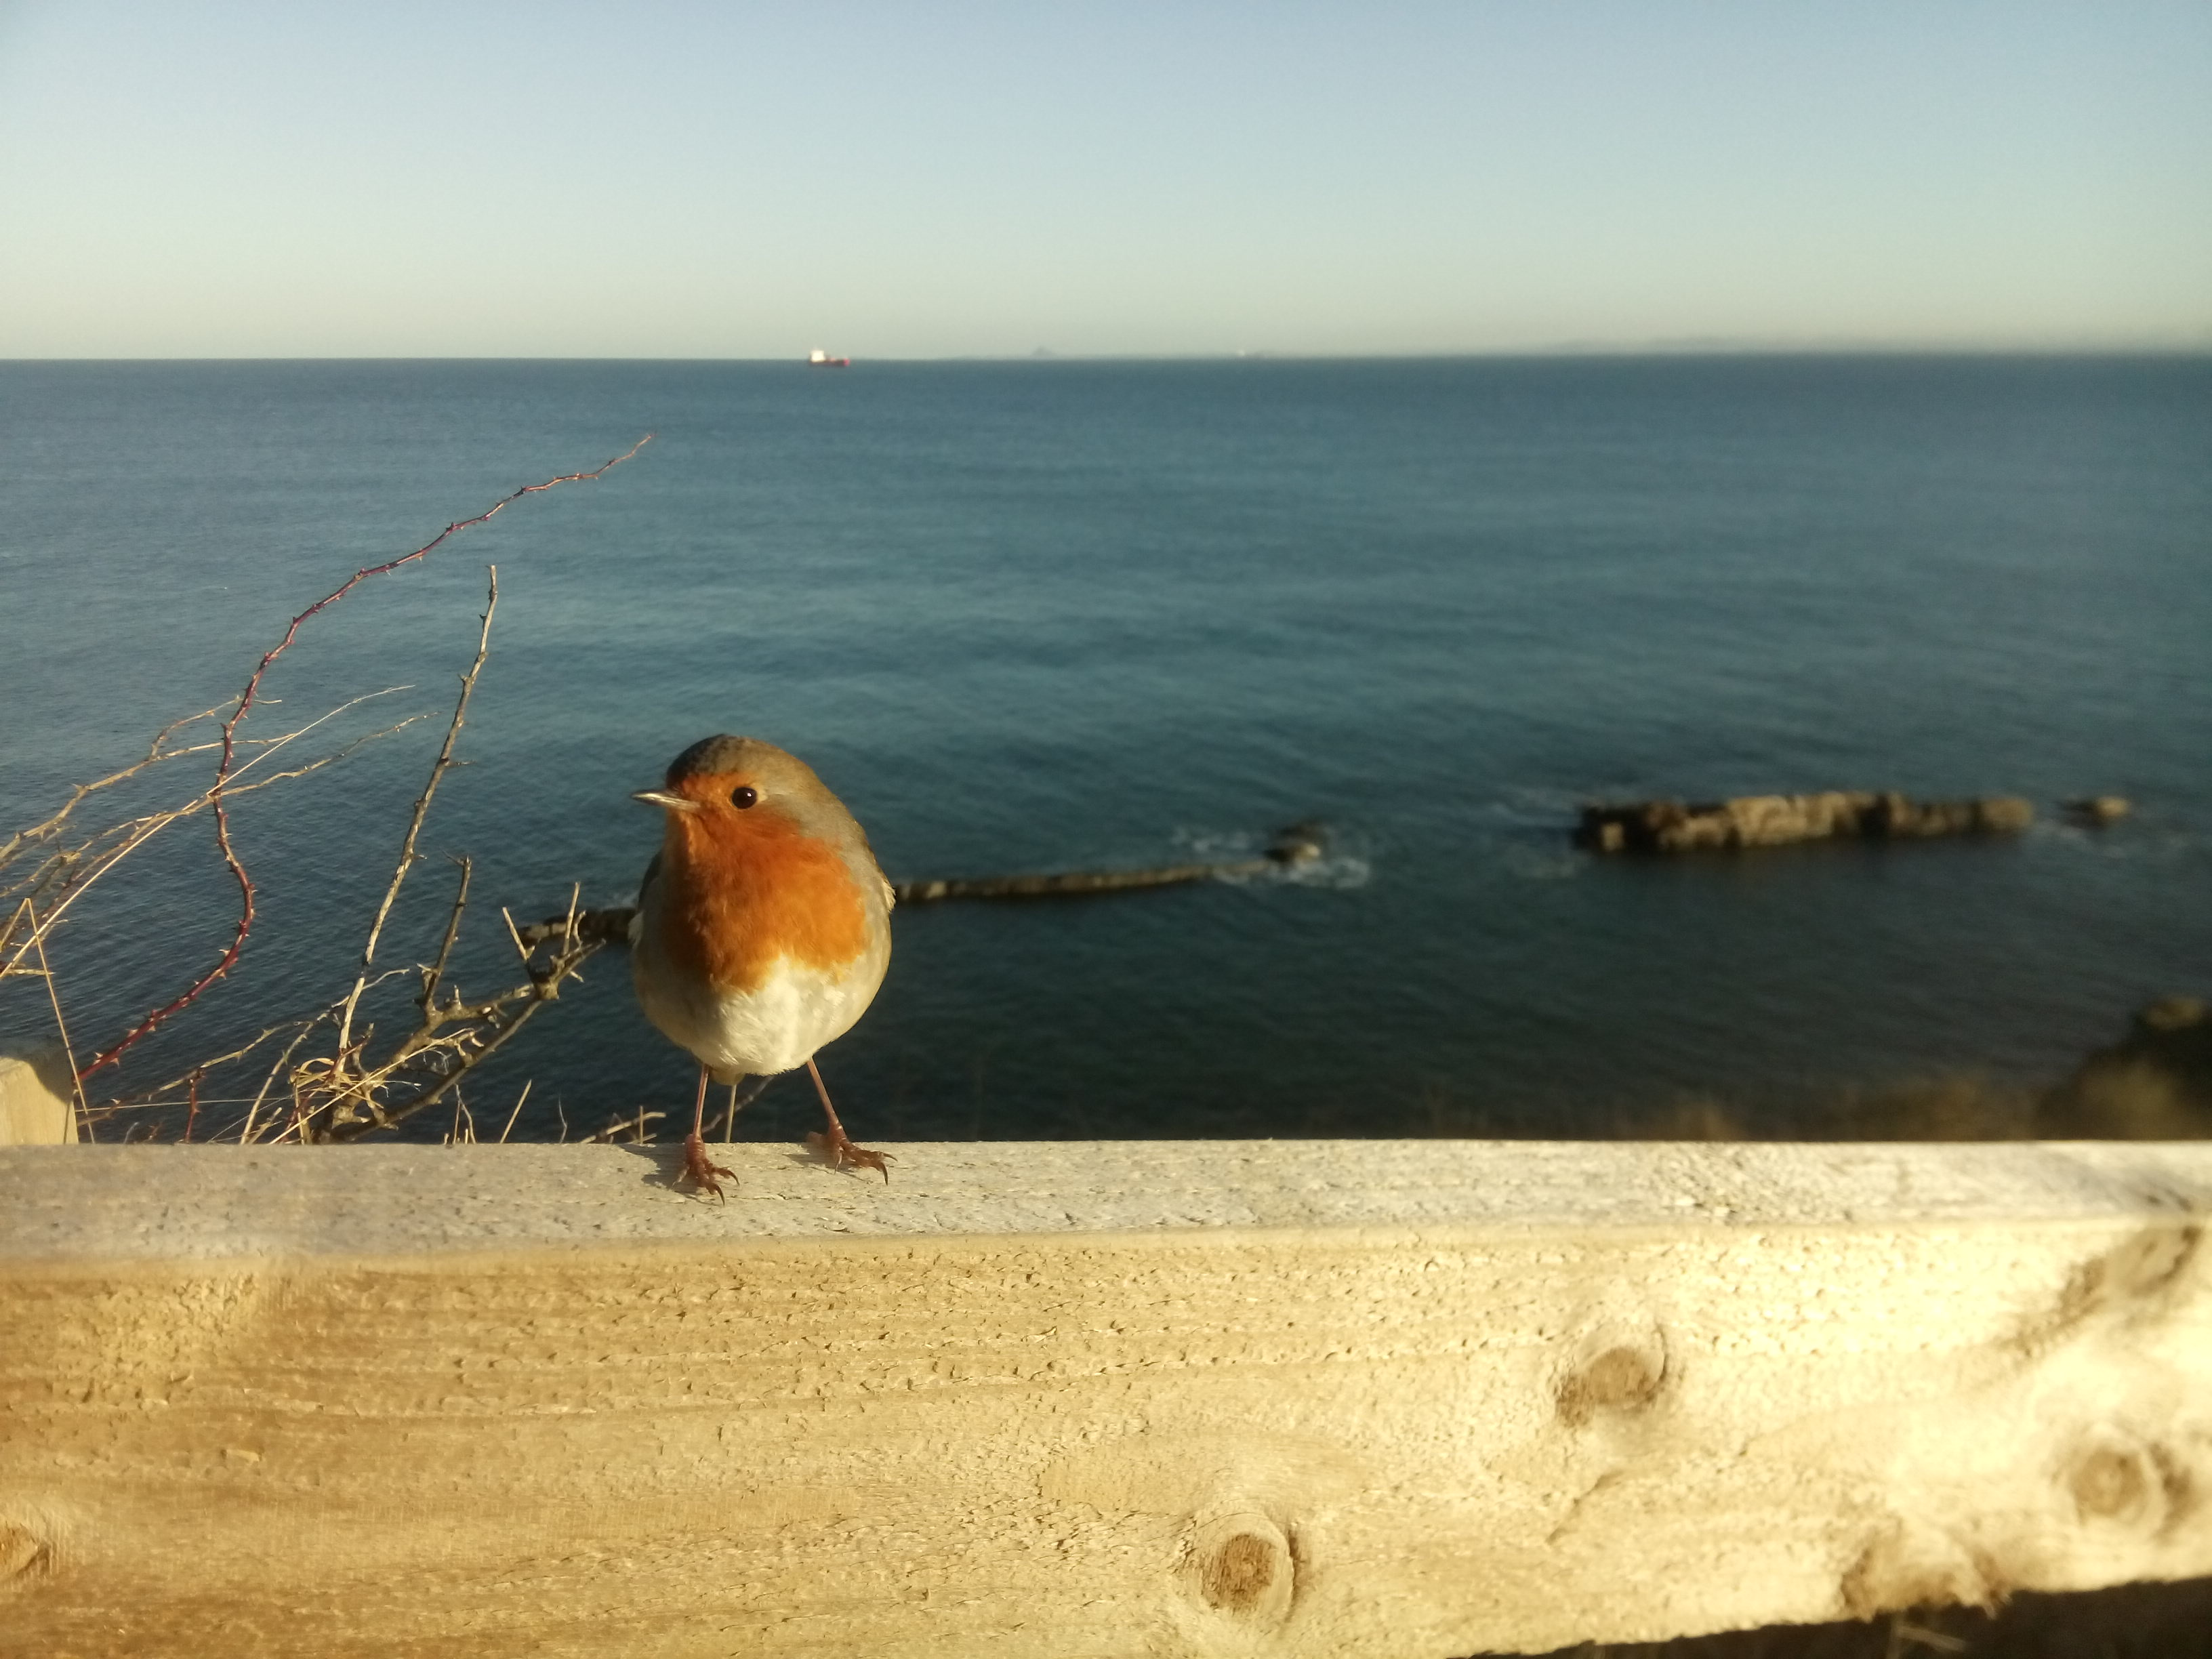 The small robin is happy we came by and hopes we have a joyous day